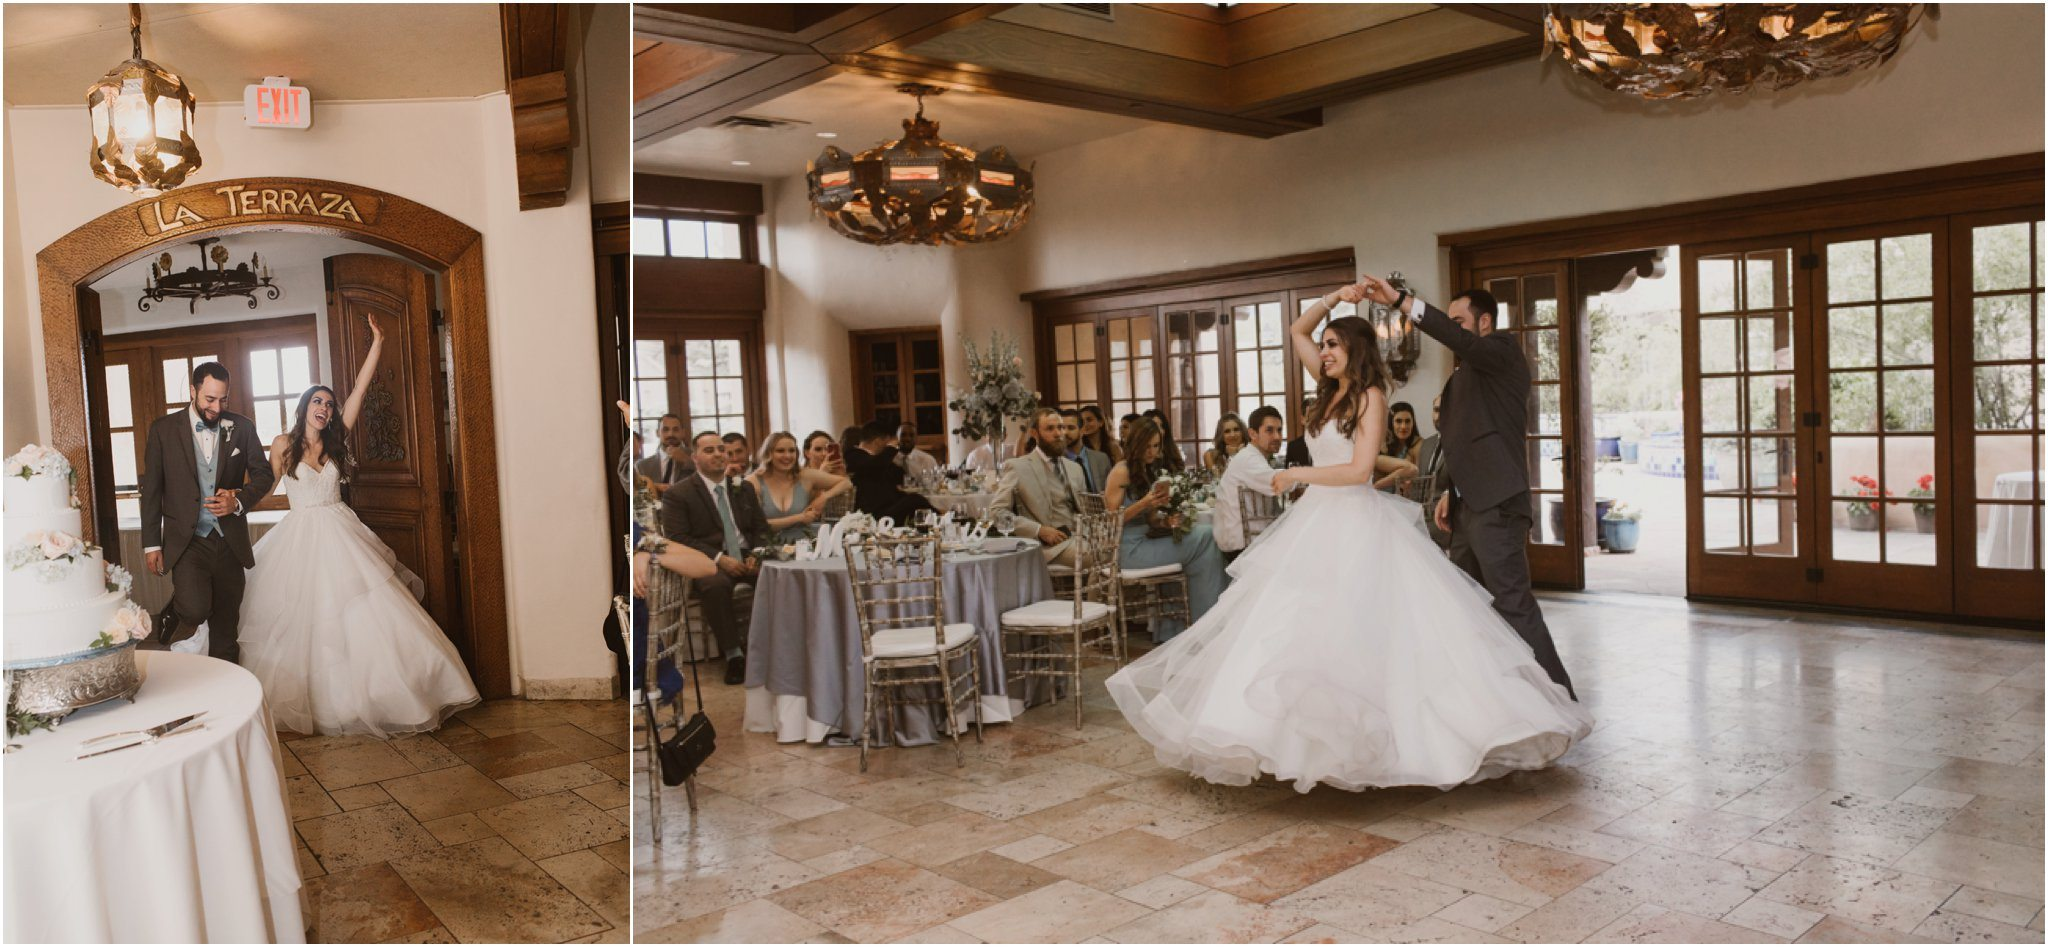 35Blue Rose Photography_ Albuquerque_ Santa Fe_ New Mexico wedding photographers